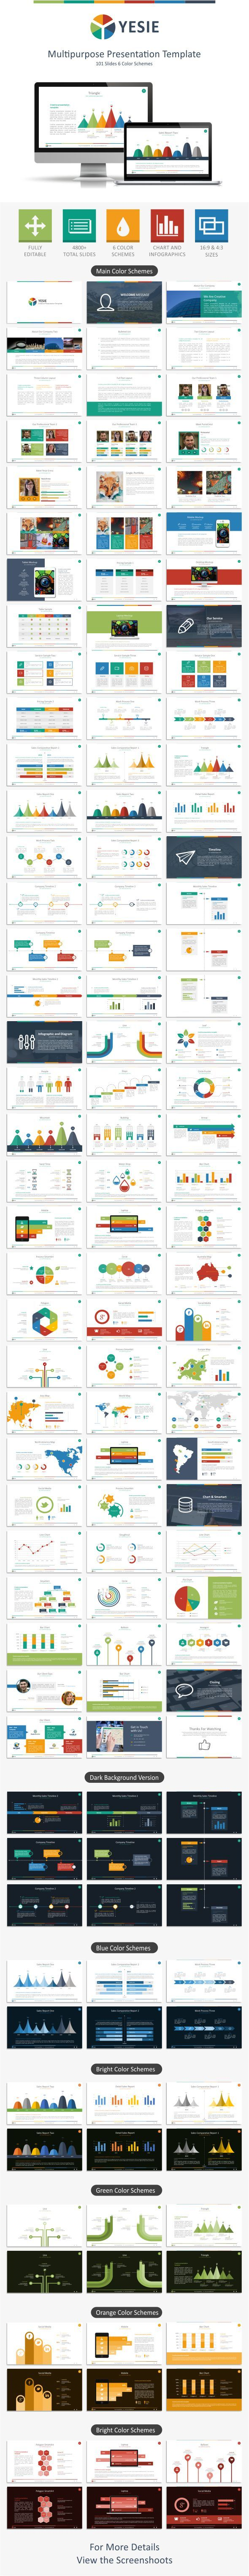 GraphicRiver Yesie Multipurpose Presentation Template 10692361